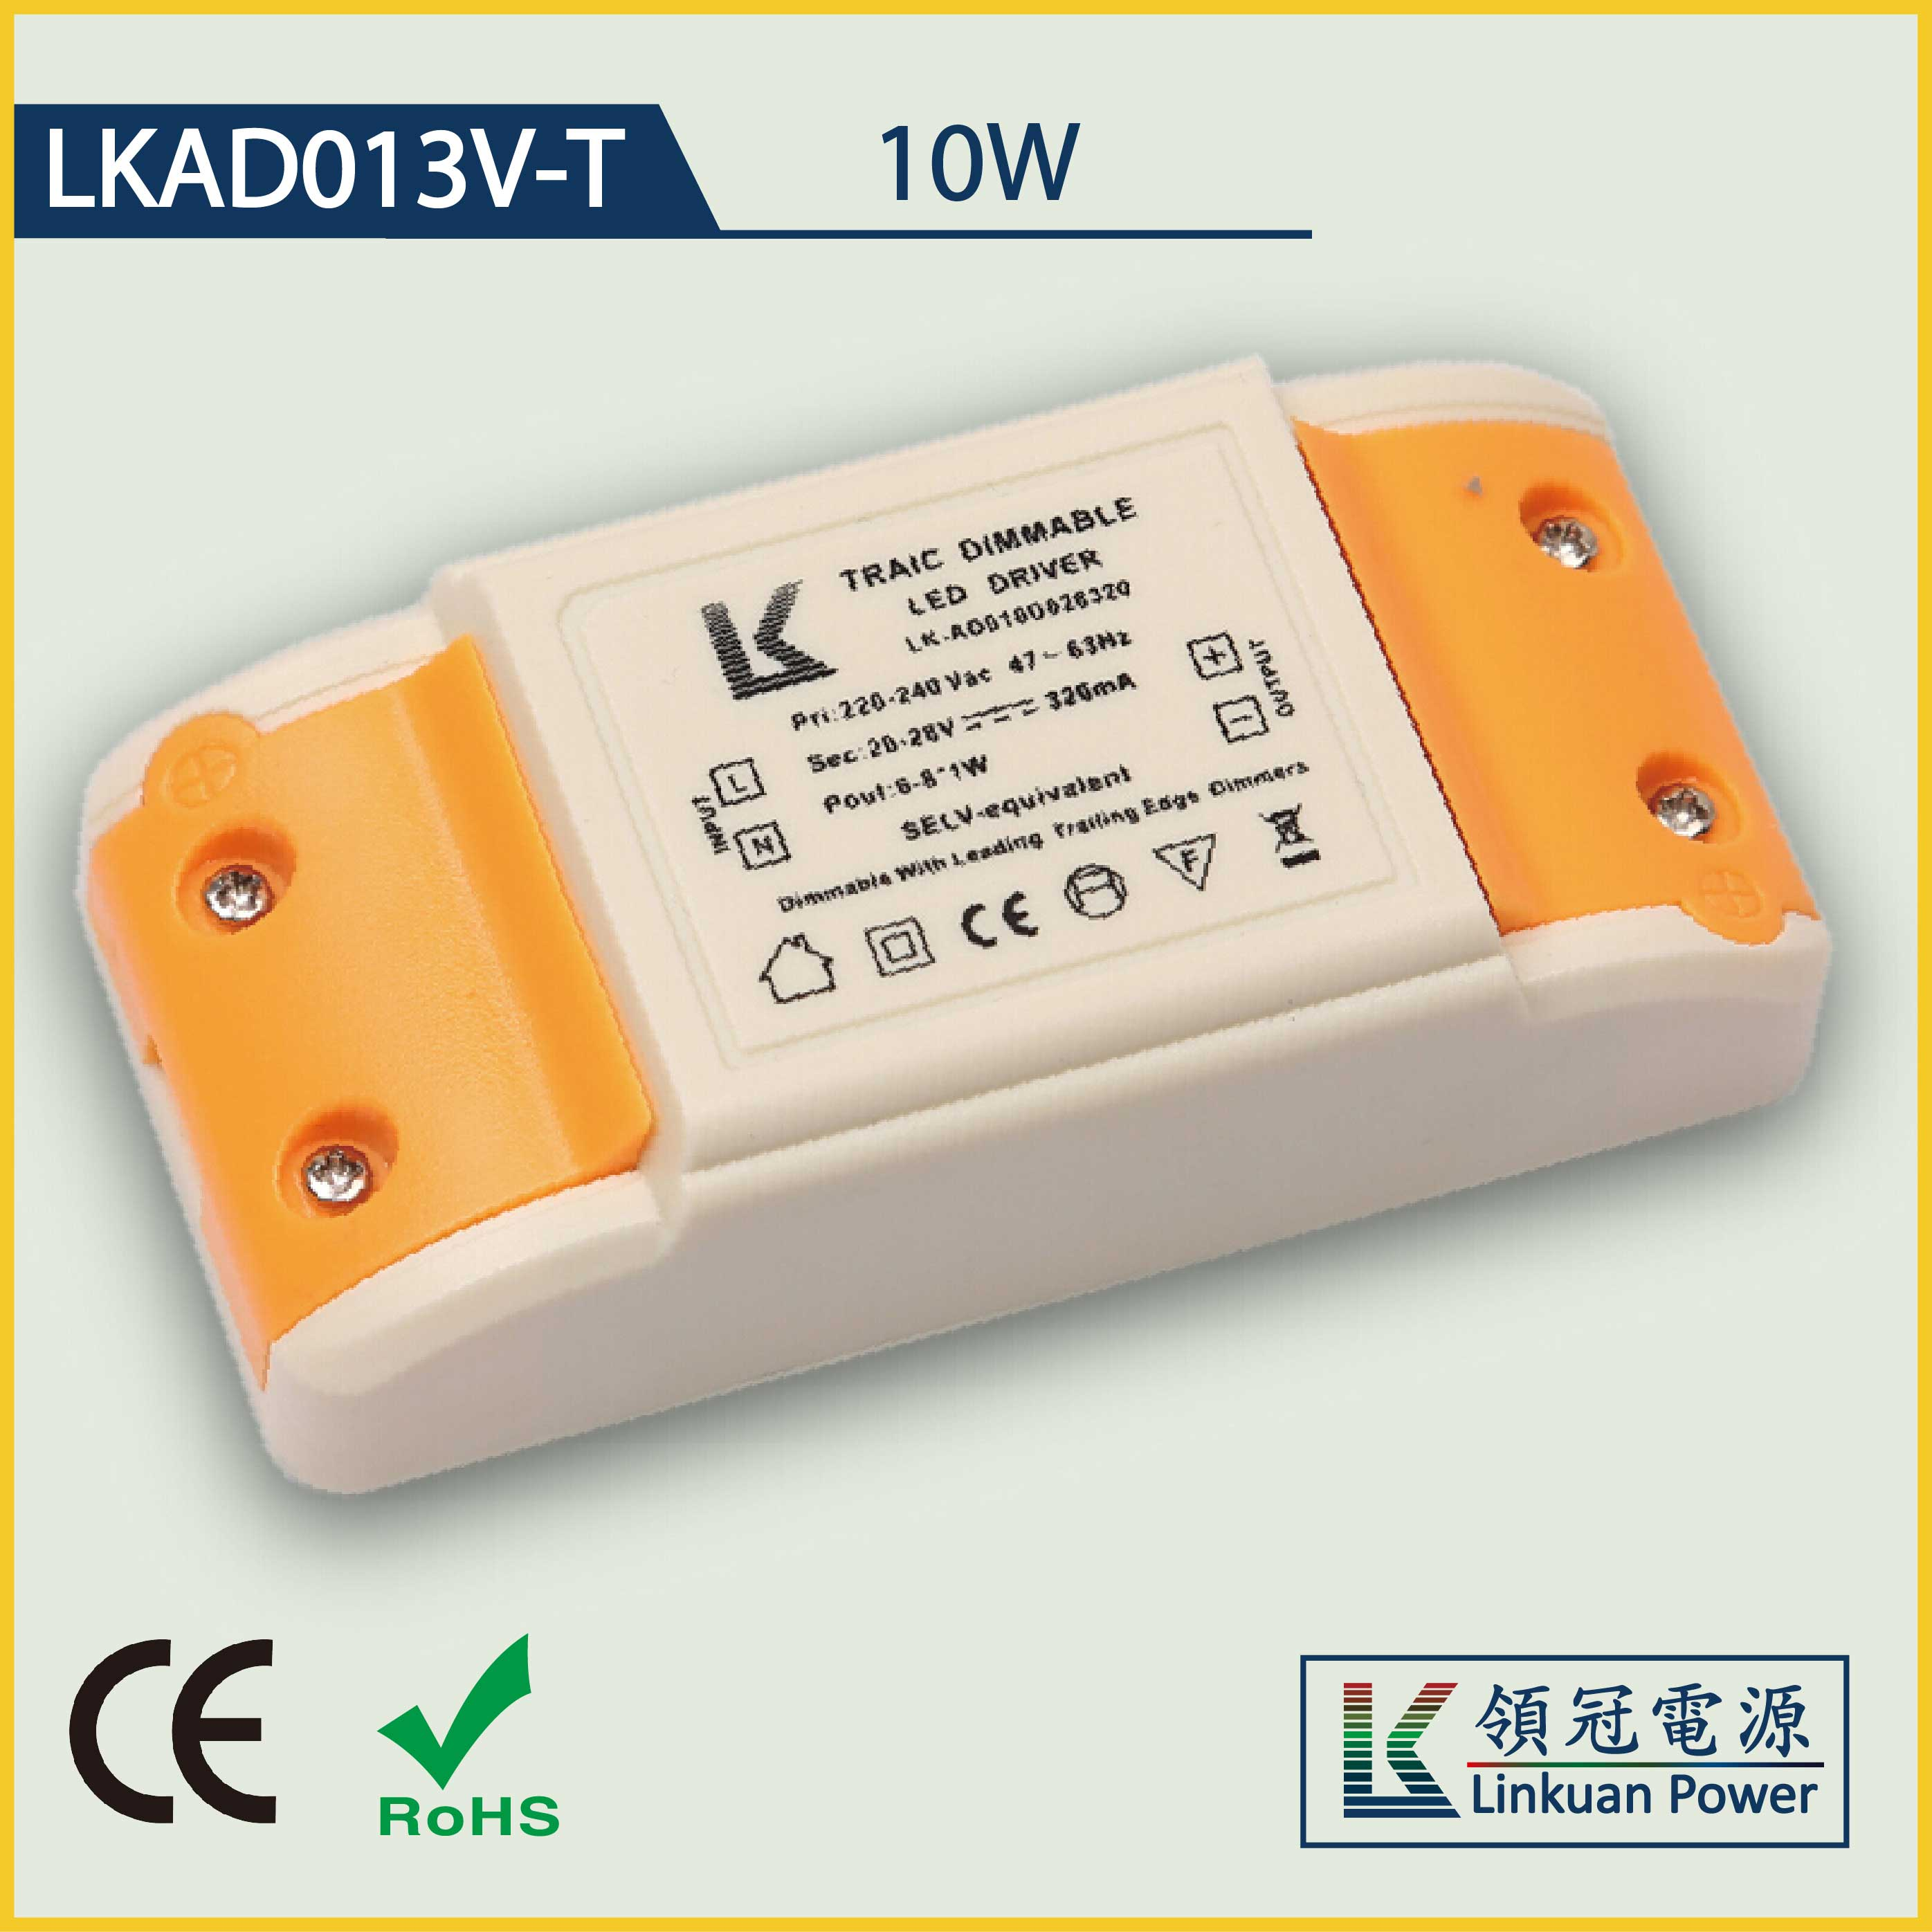 LKAD013V-T 10W constant voltage 12/24V 800/400mA triac dimmable led driver